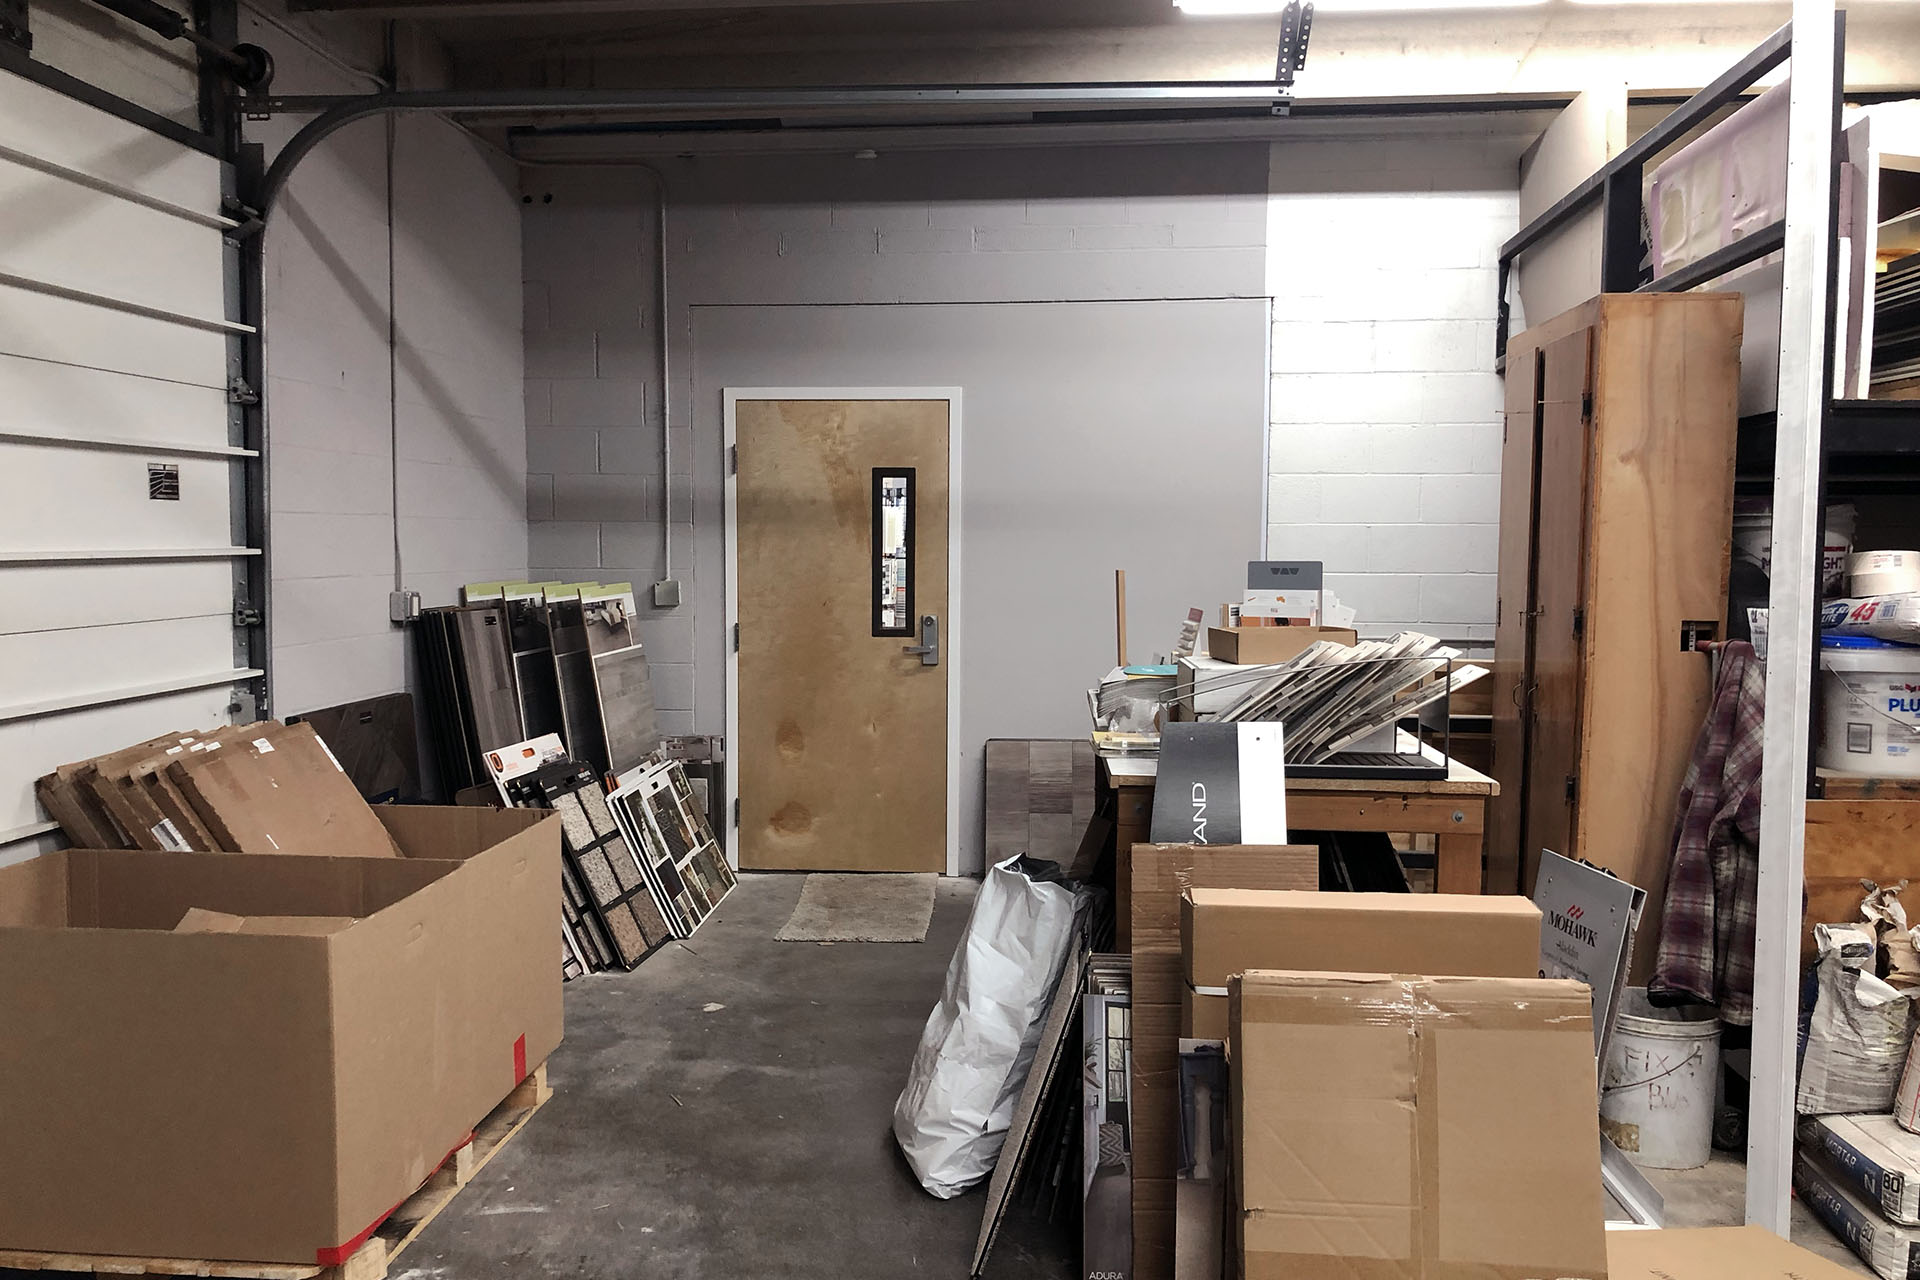 6740-2-after-warehouse-March-2019-dandsflooring.jpg